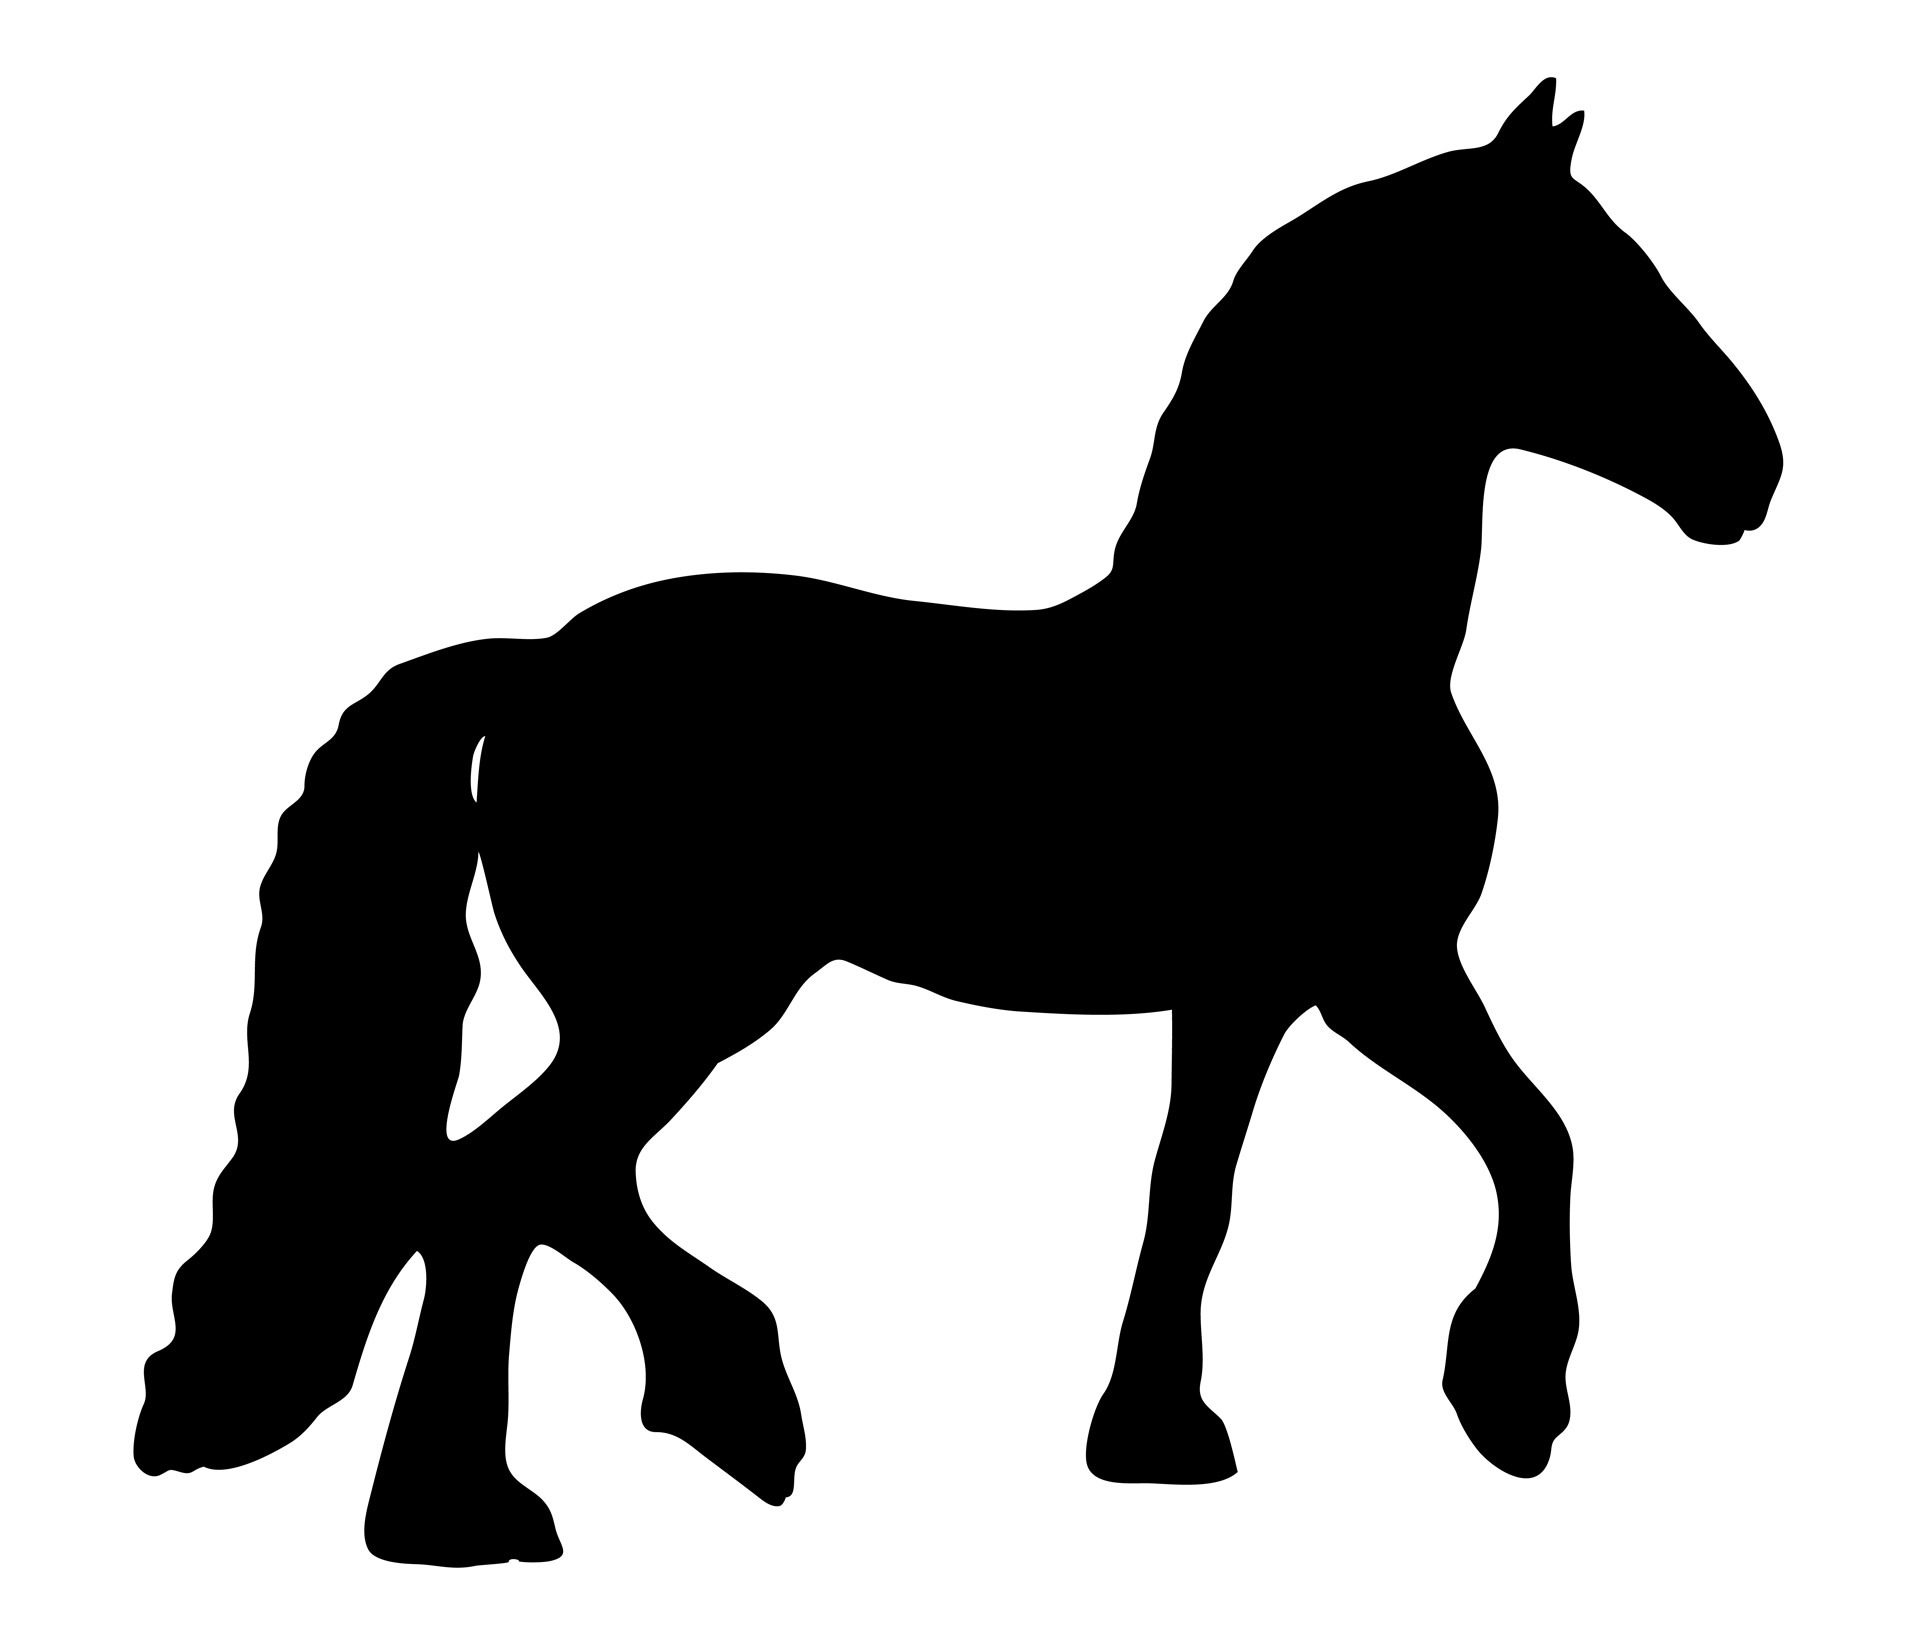 Black Horse Silhouette On A White Background Free Image